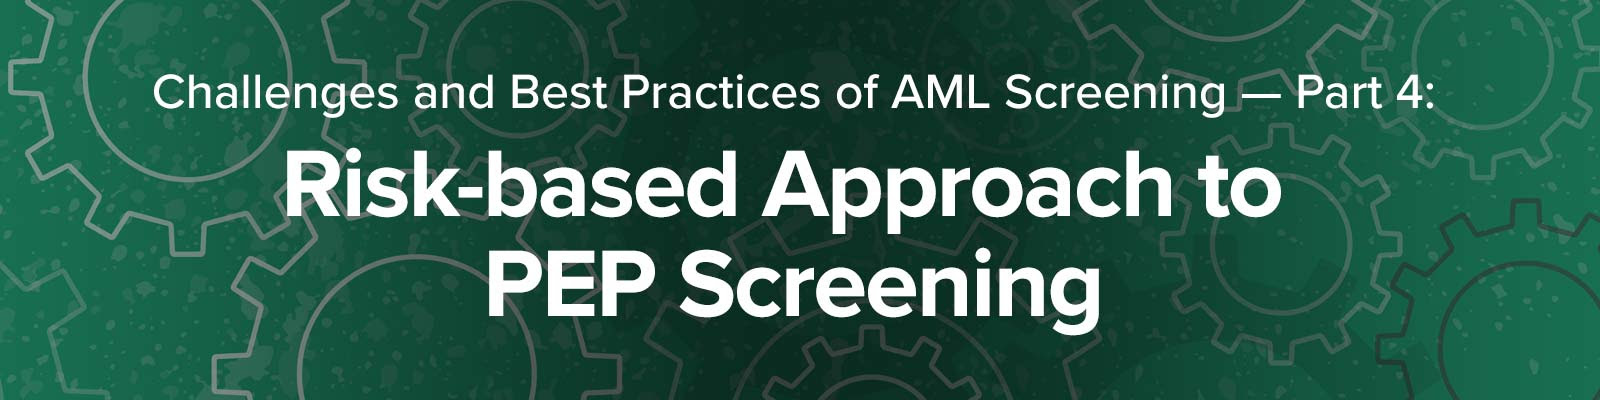 Challenges and Best Practices of PEP & Sanctions Screening Part 4: Risk-based Approach to PEP Screening